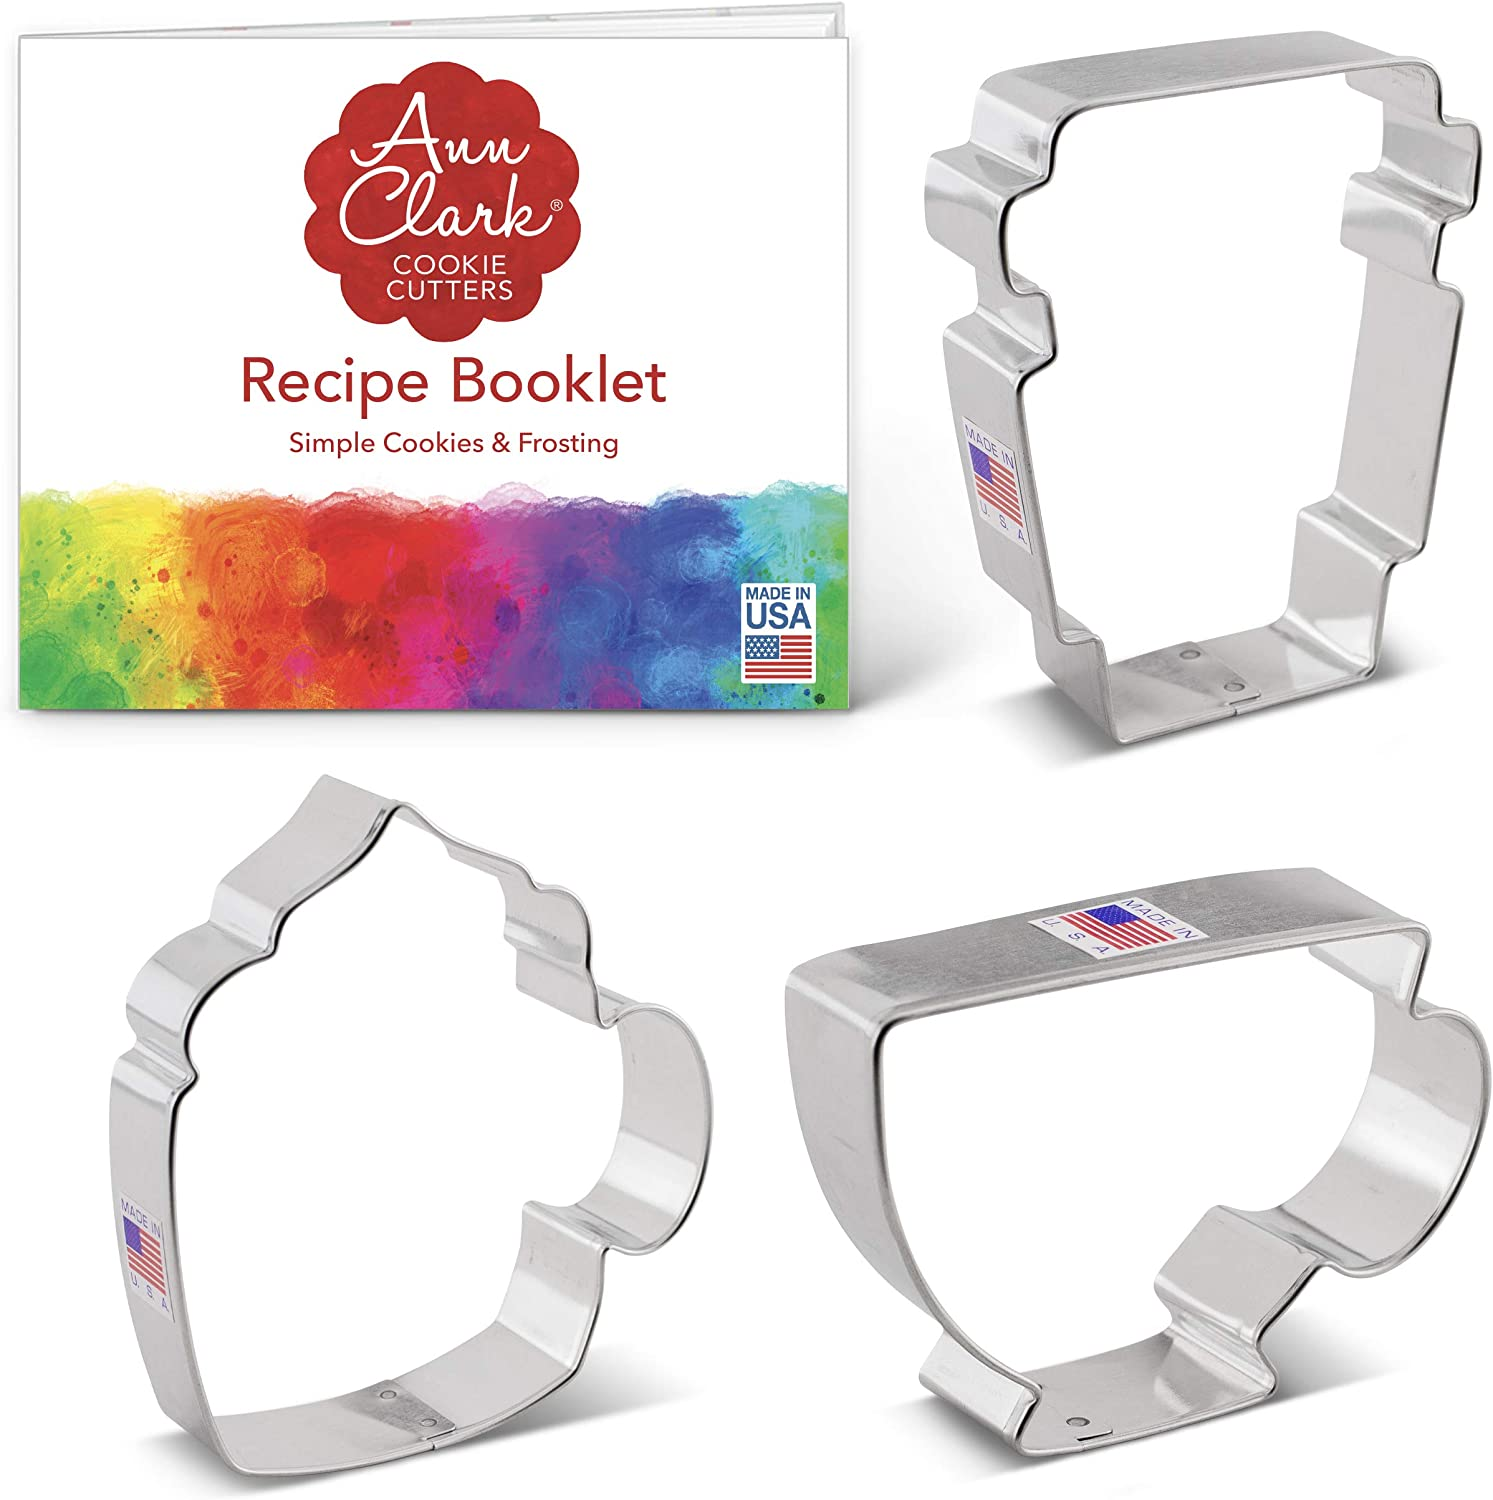 Ann Clark Cookie Cutters 3 Piece Coffee / Tea Cup Cookie Cutter Set with Recipe Booklet, Coffee Mug, Latte Cup, Teacup